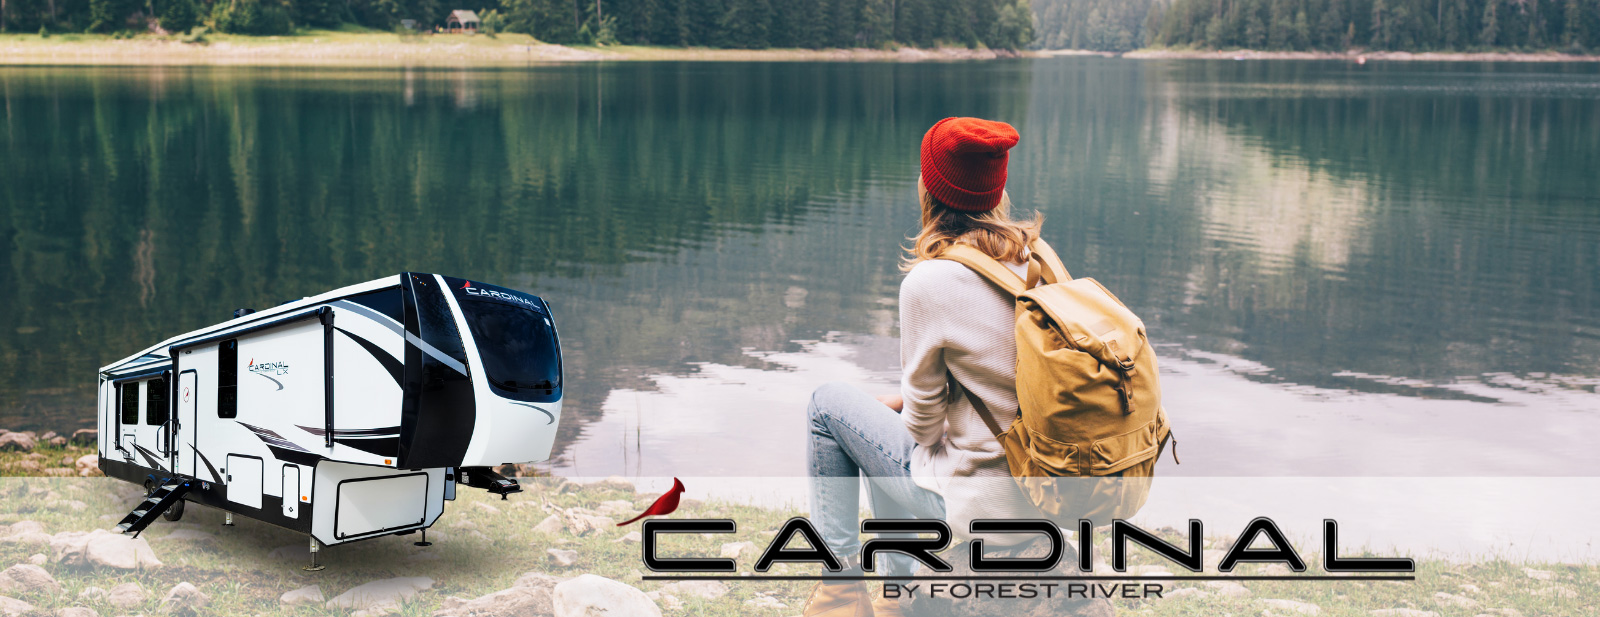 Cardinal Luxury | Forest River RV - Manufacturer of Travel